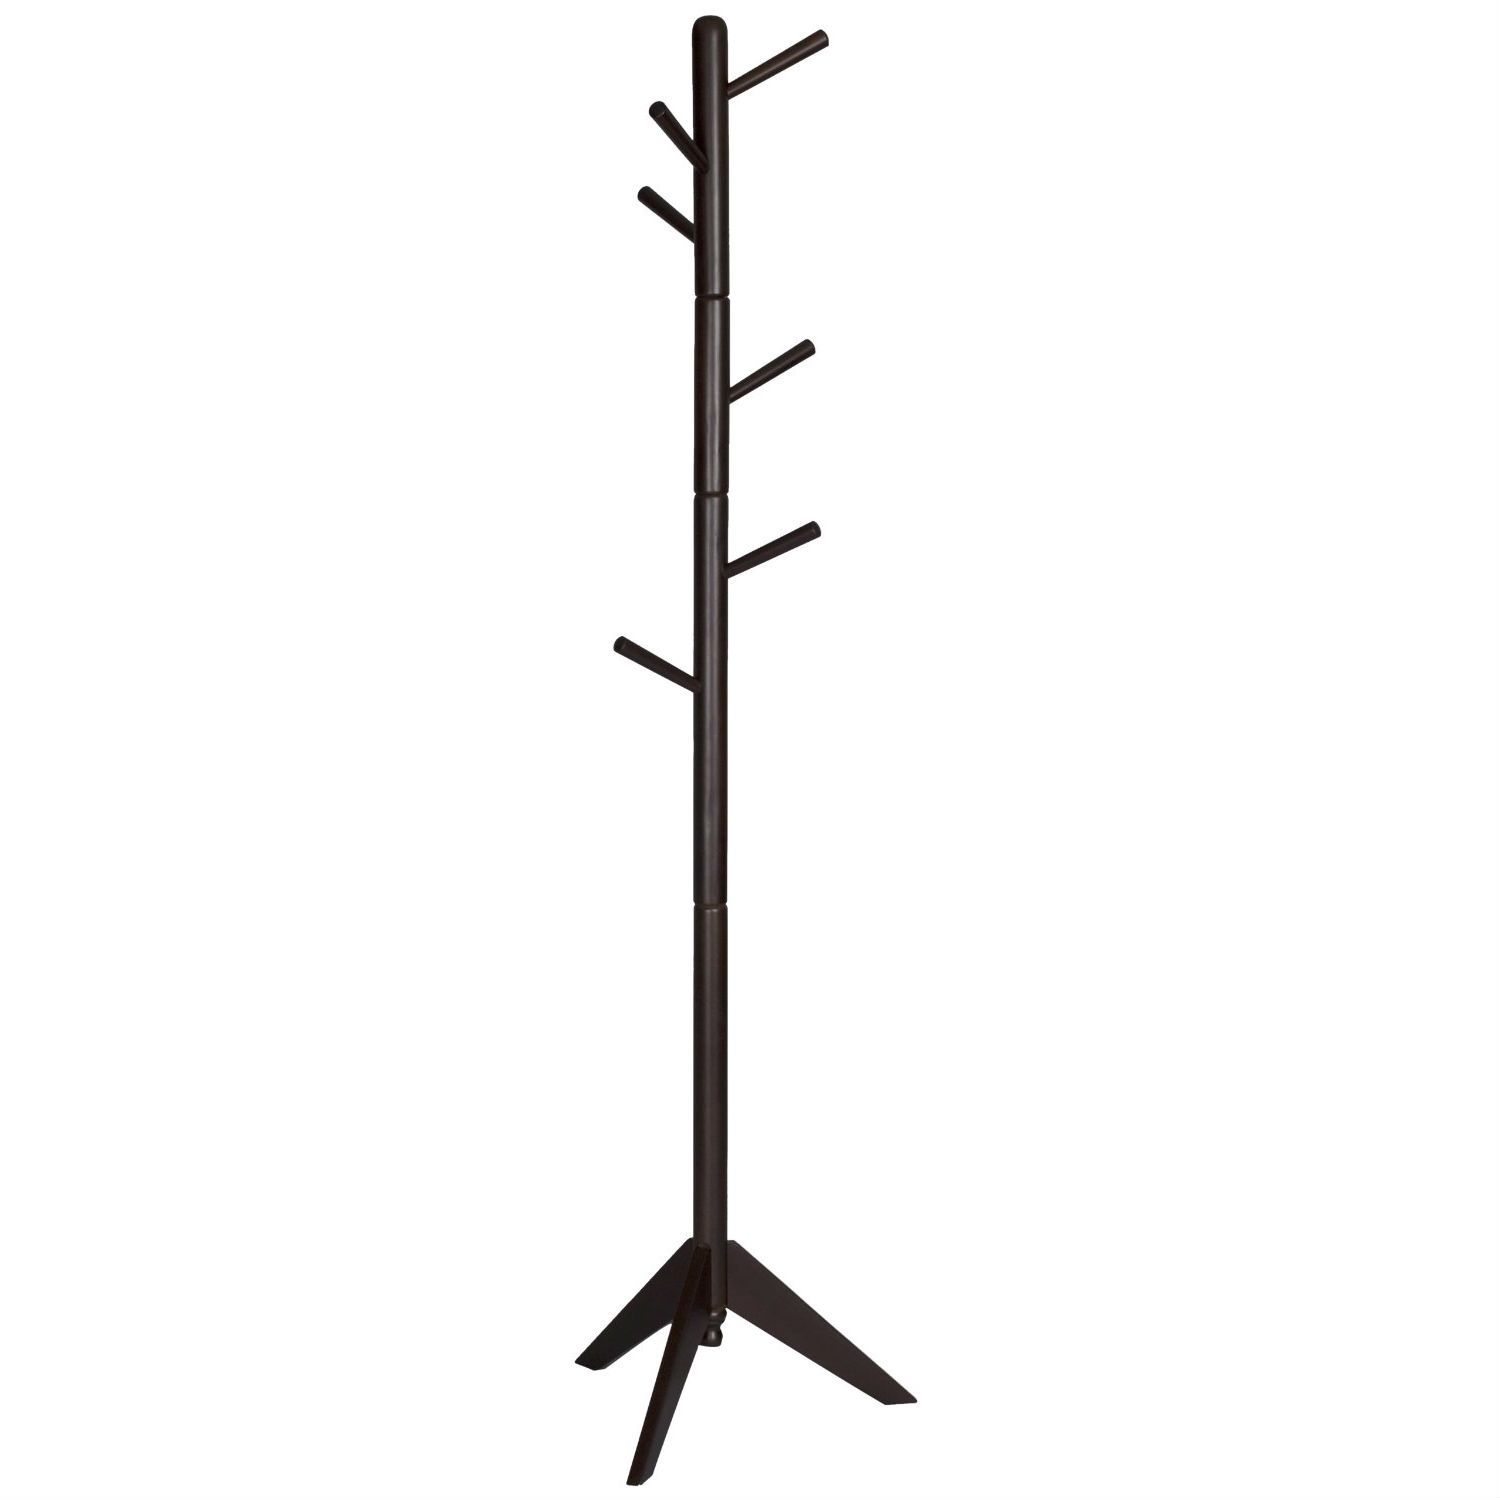 Espresso Wood Finish Coat Rack Entryway Hall Tree Hat Rack